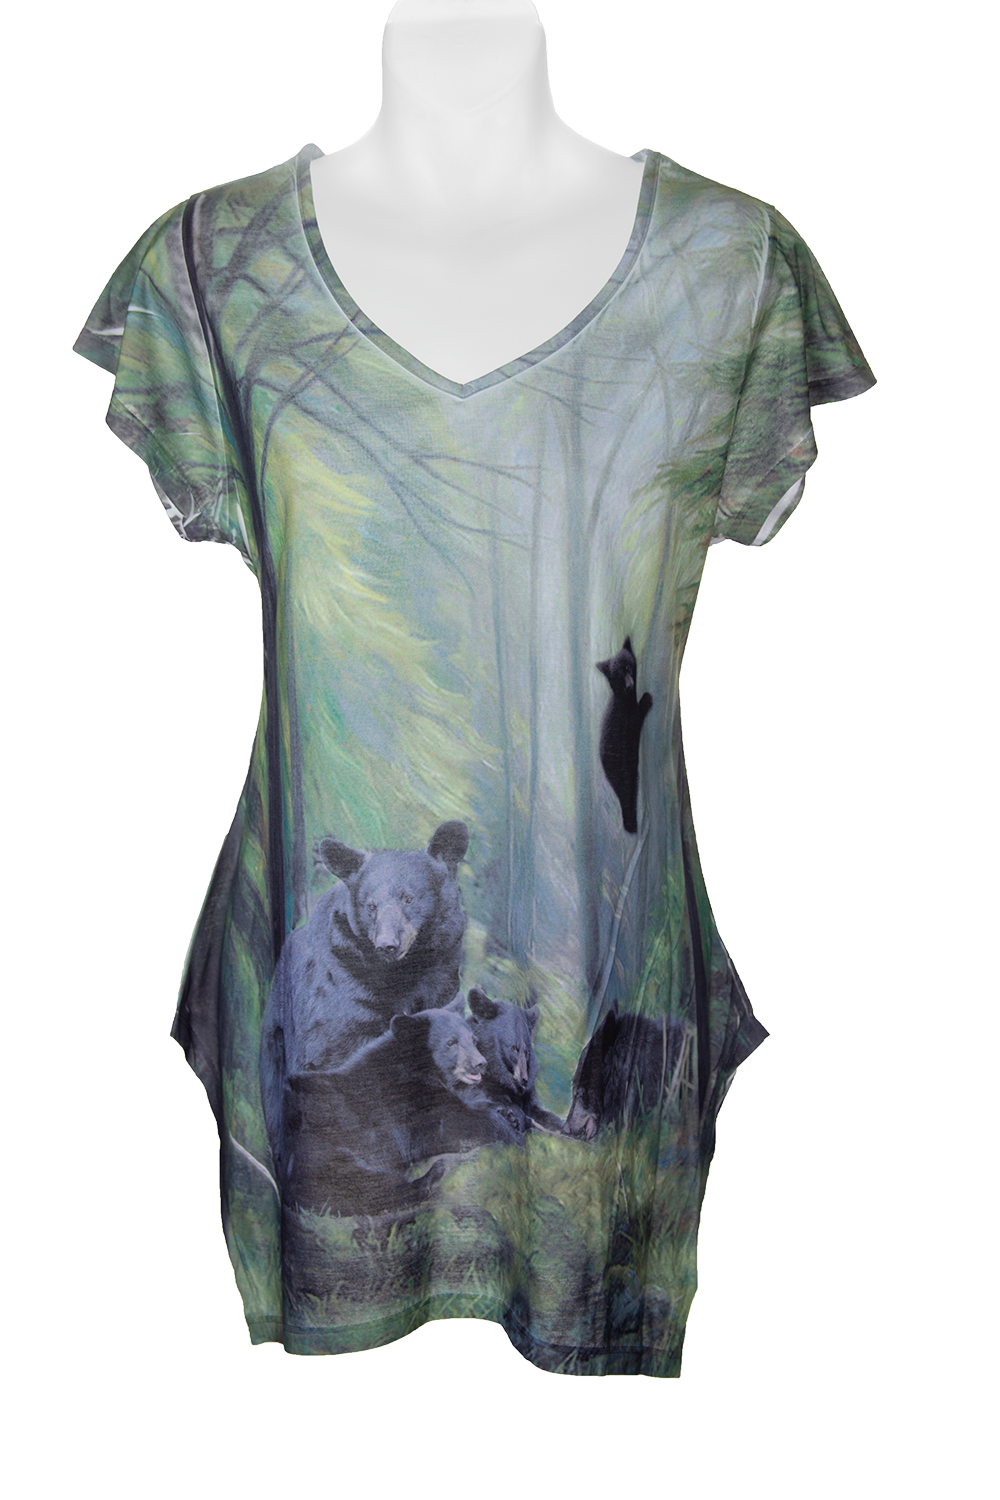 Women's Family Meeting fashion shirt - shades of green t-shirt with bear nature art